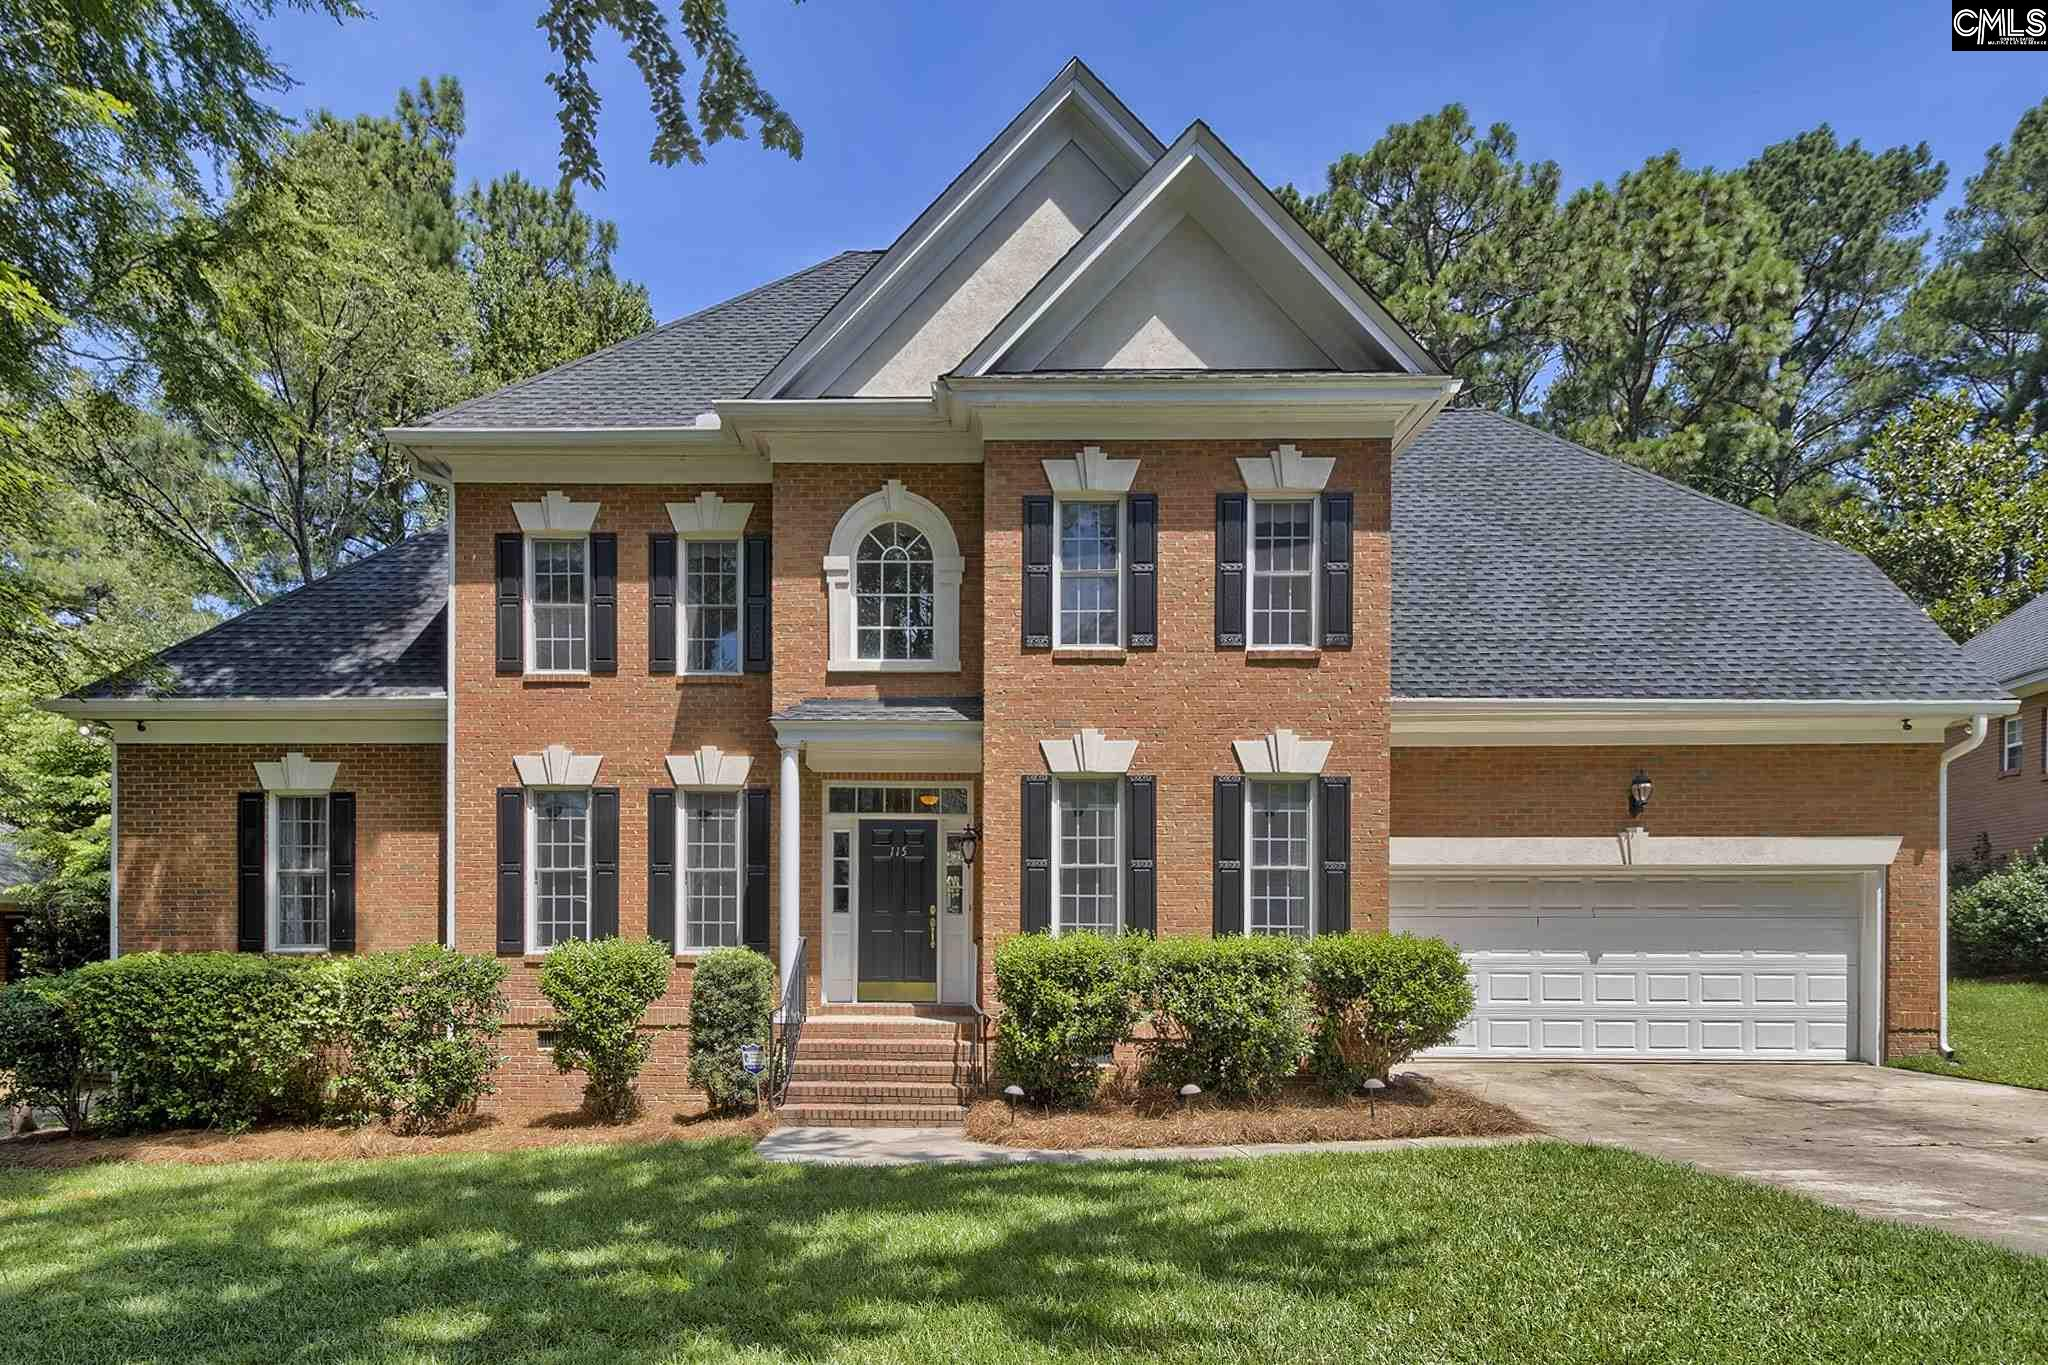 115 Hollingwood Columbia, SC 29223